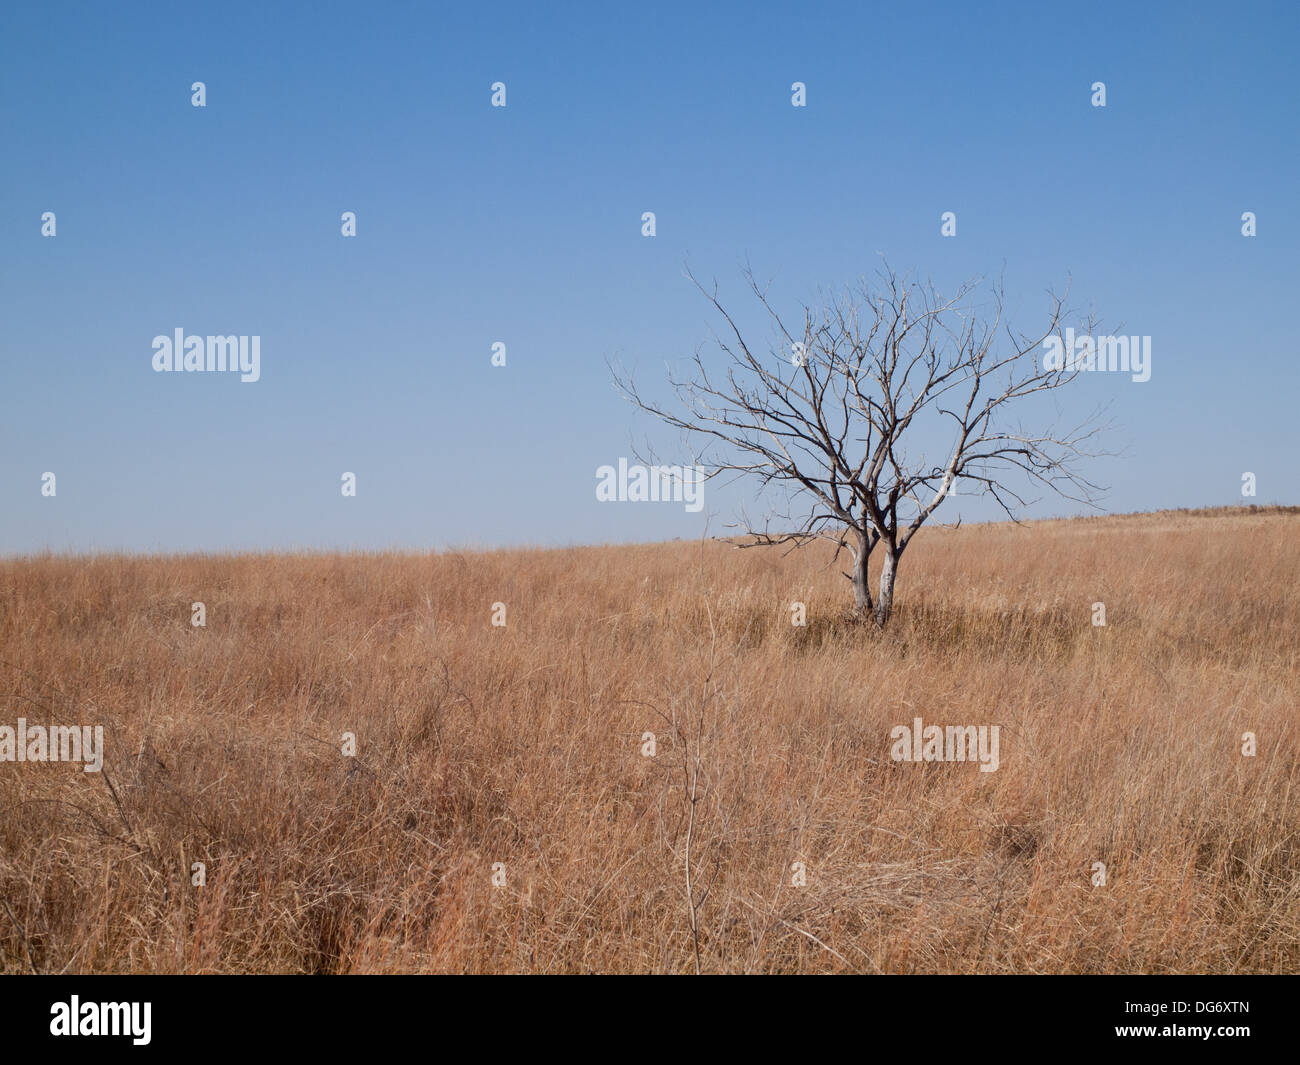 Natural prairie grassland landscape at Beaver Creek Conservation Area near Saskatoon, Saskatchewan, Canada. - Stock Image